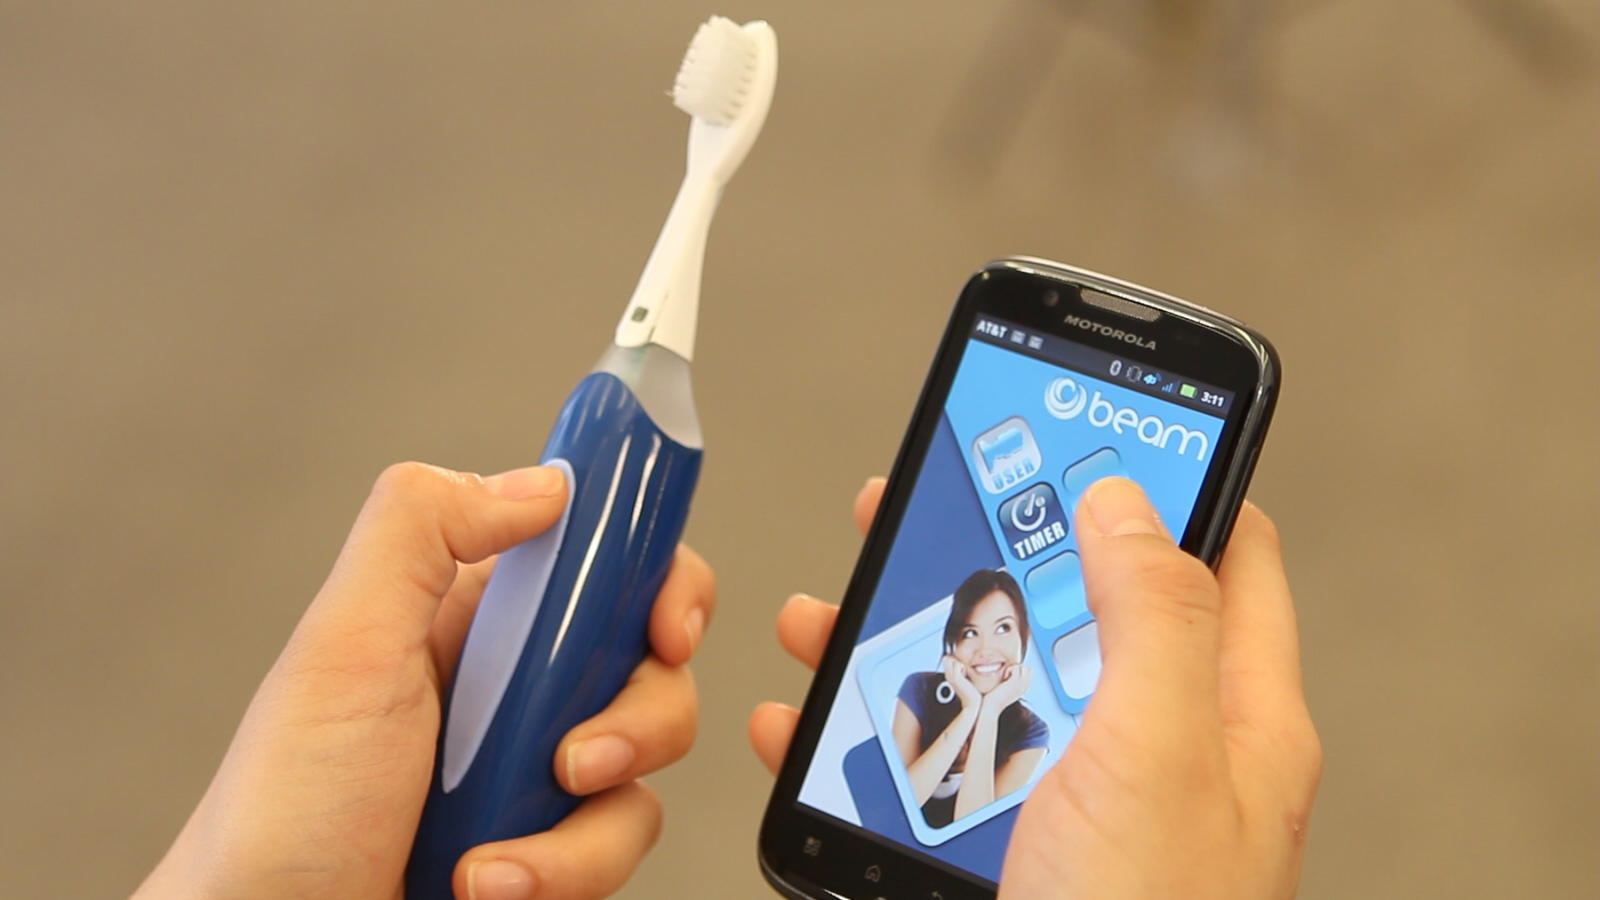 The Beam toothbrush that launched in 2013.